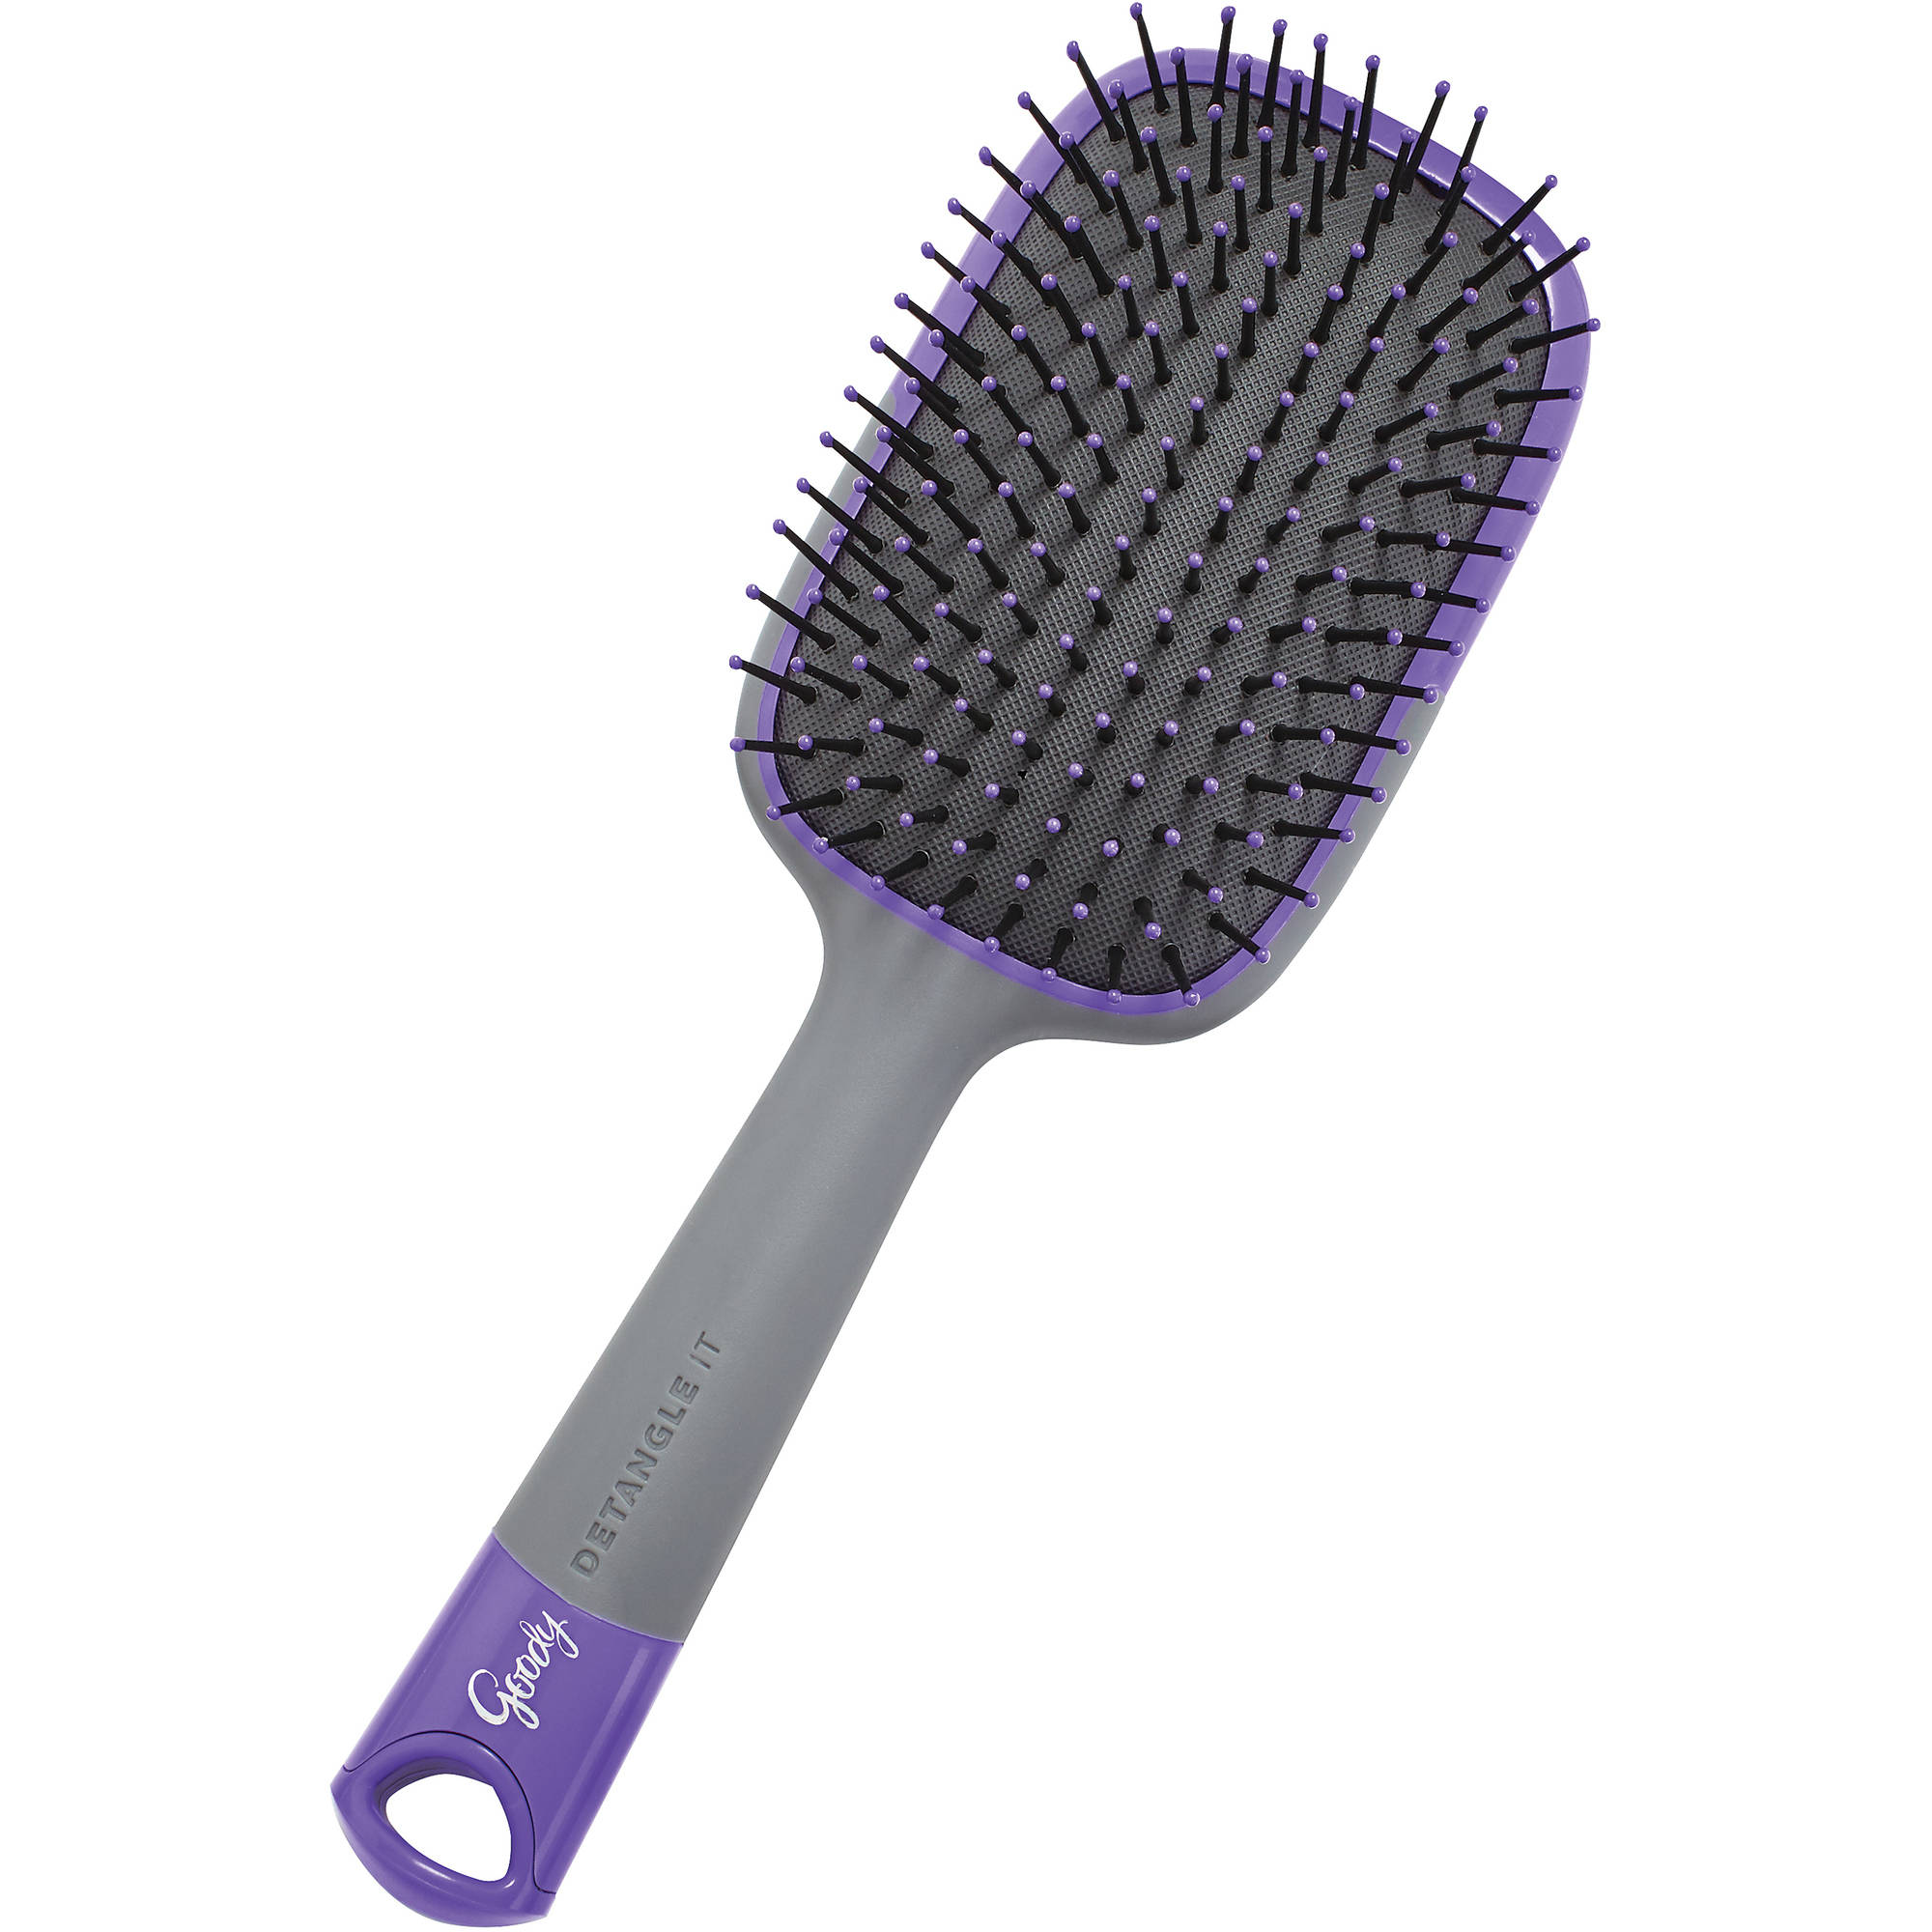 Goody Detangle It Paddle Hair Brush